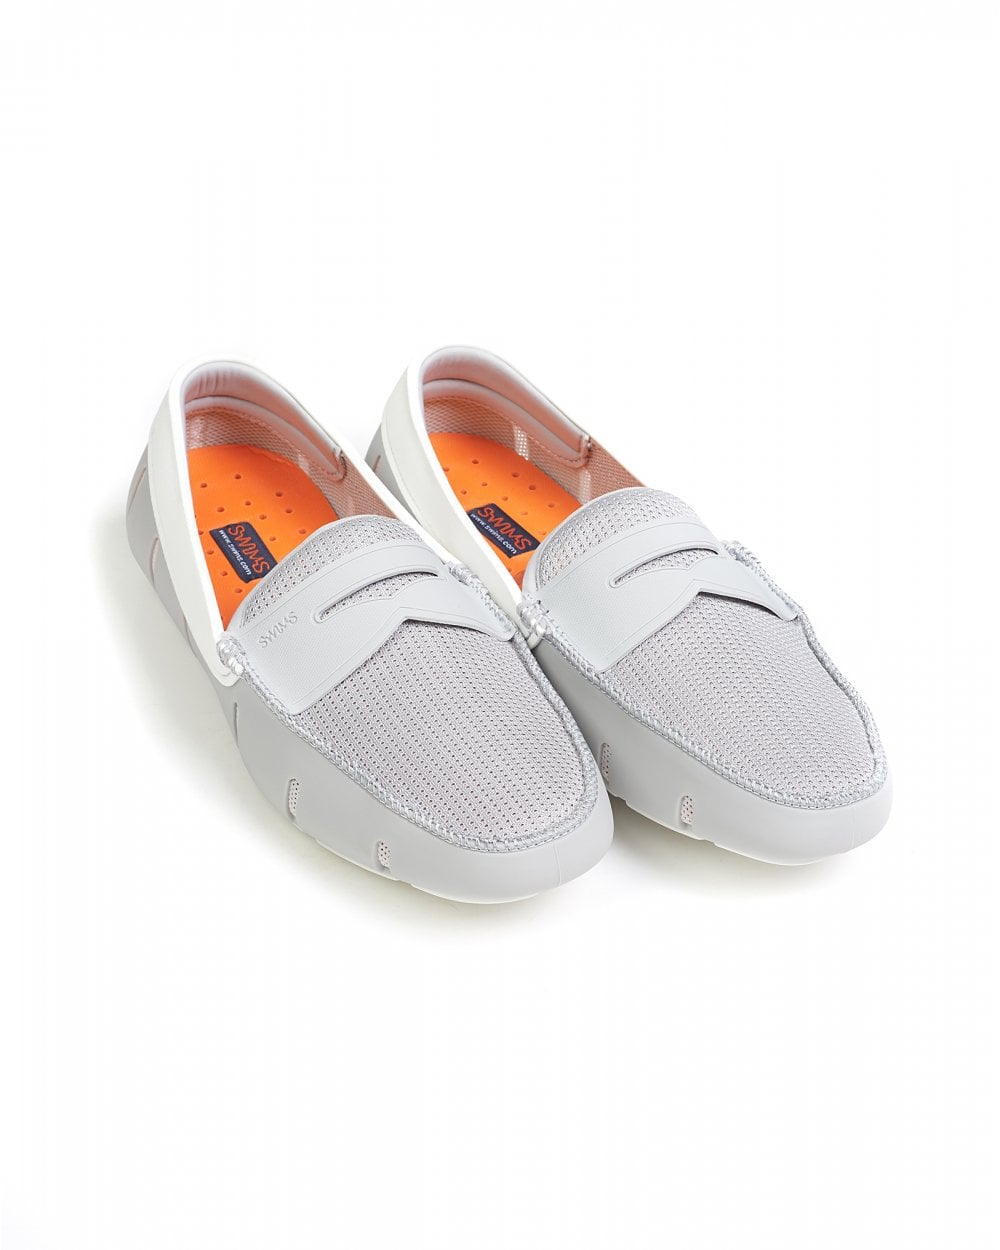 7fe14935dca Swims Mens White Shoes